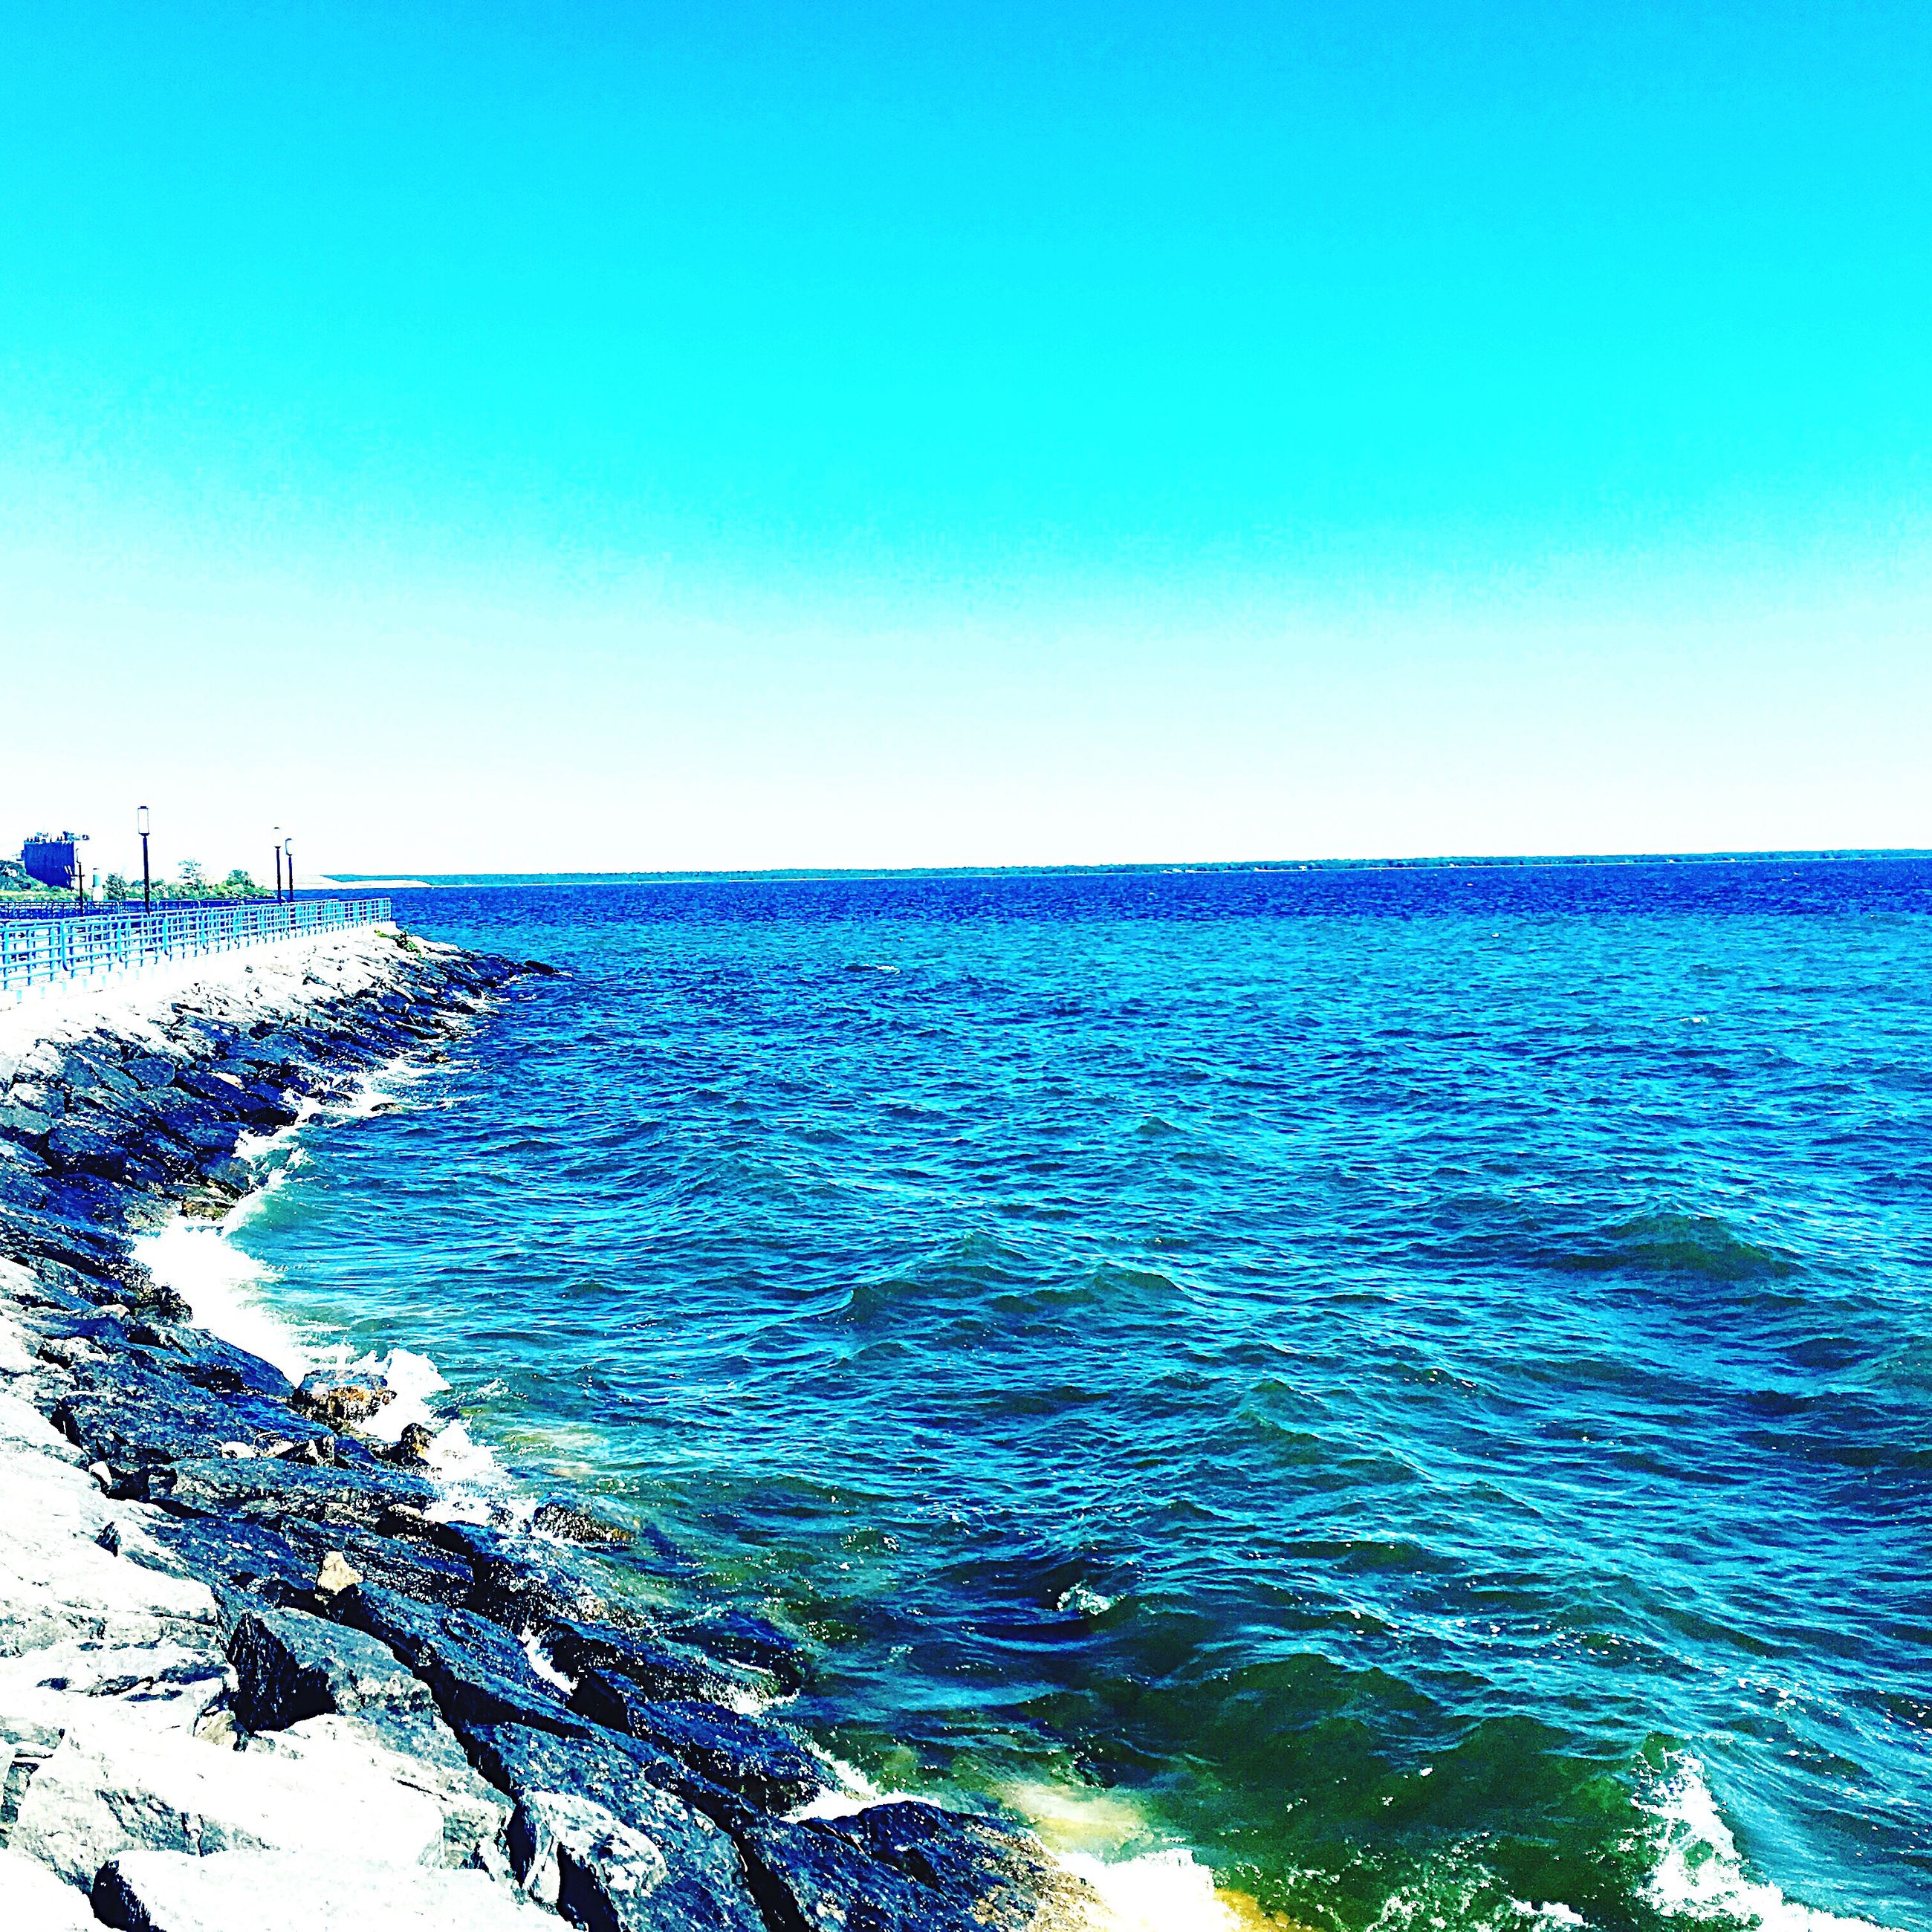 blue, clear sky, copy space, sea, scenics, horizon over water, water, tranquil scene, beauty in nature, tranquility, rippled, nature, seascape, day, outdoors, turquoise colored, majestic, no people, non-urban scene, waterfront, remote, coastline